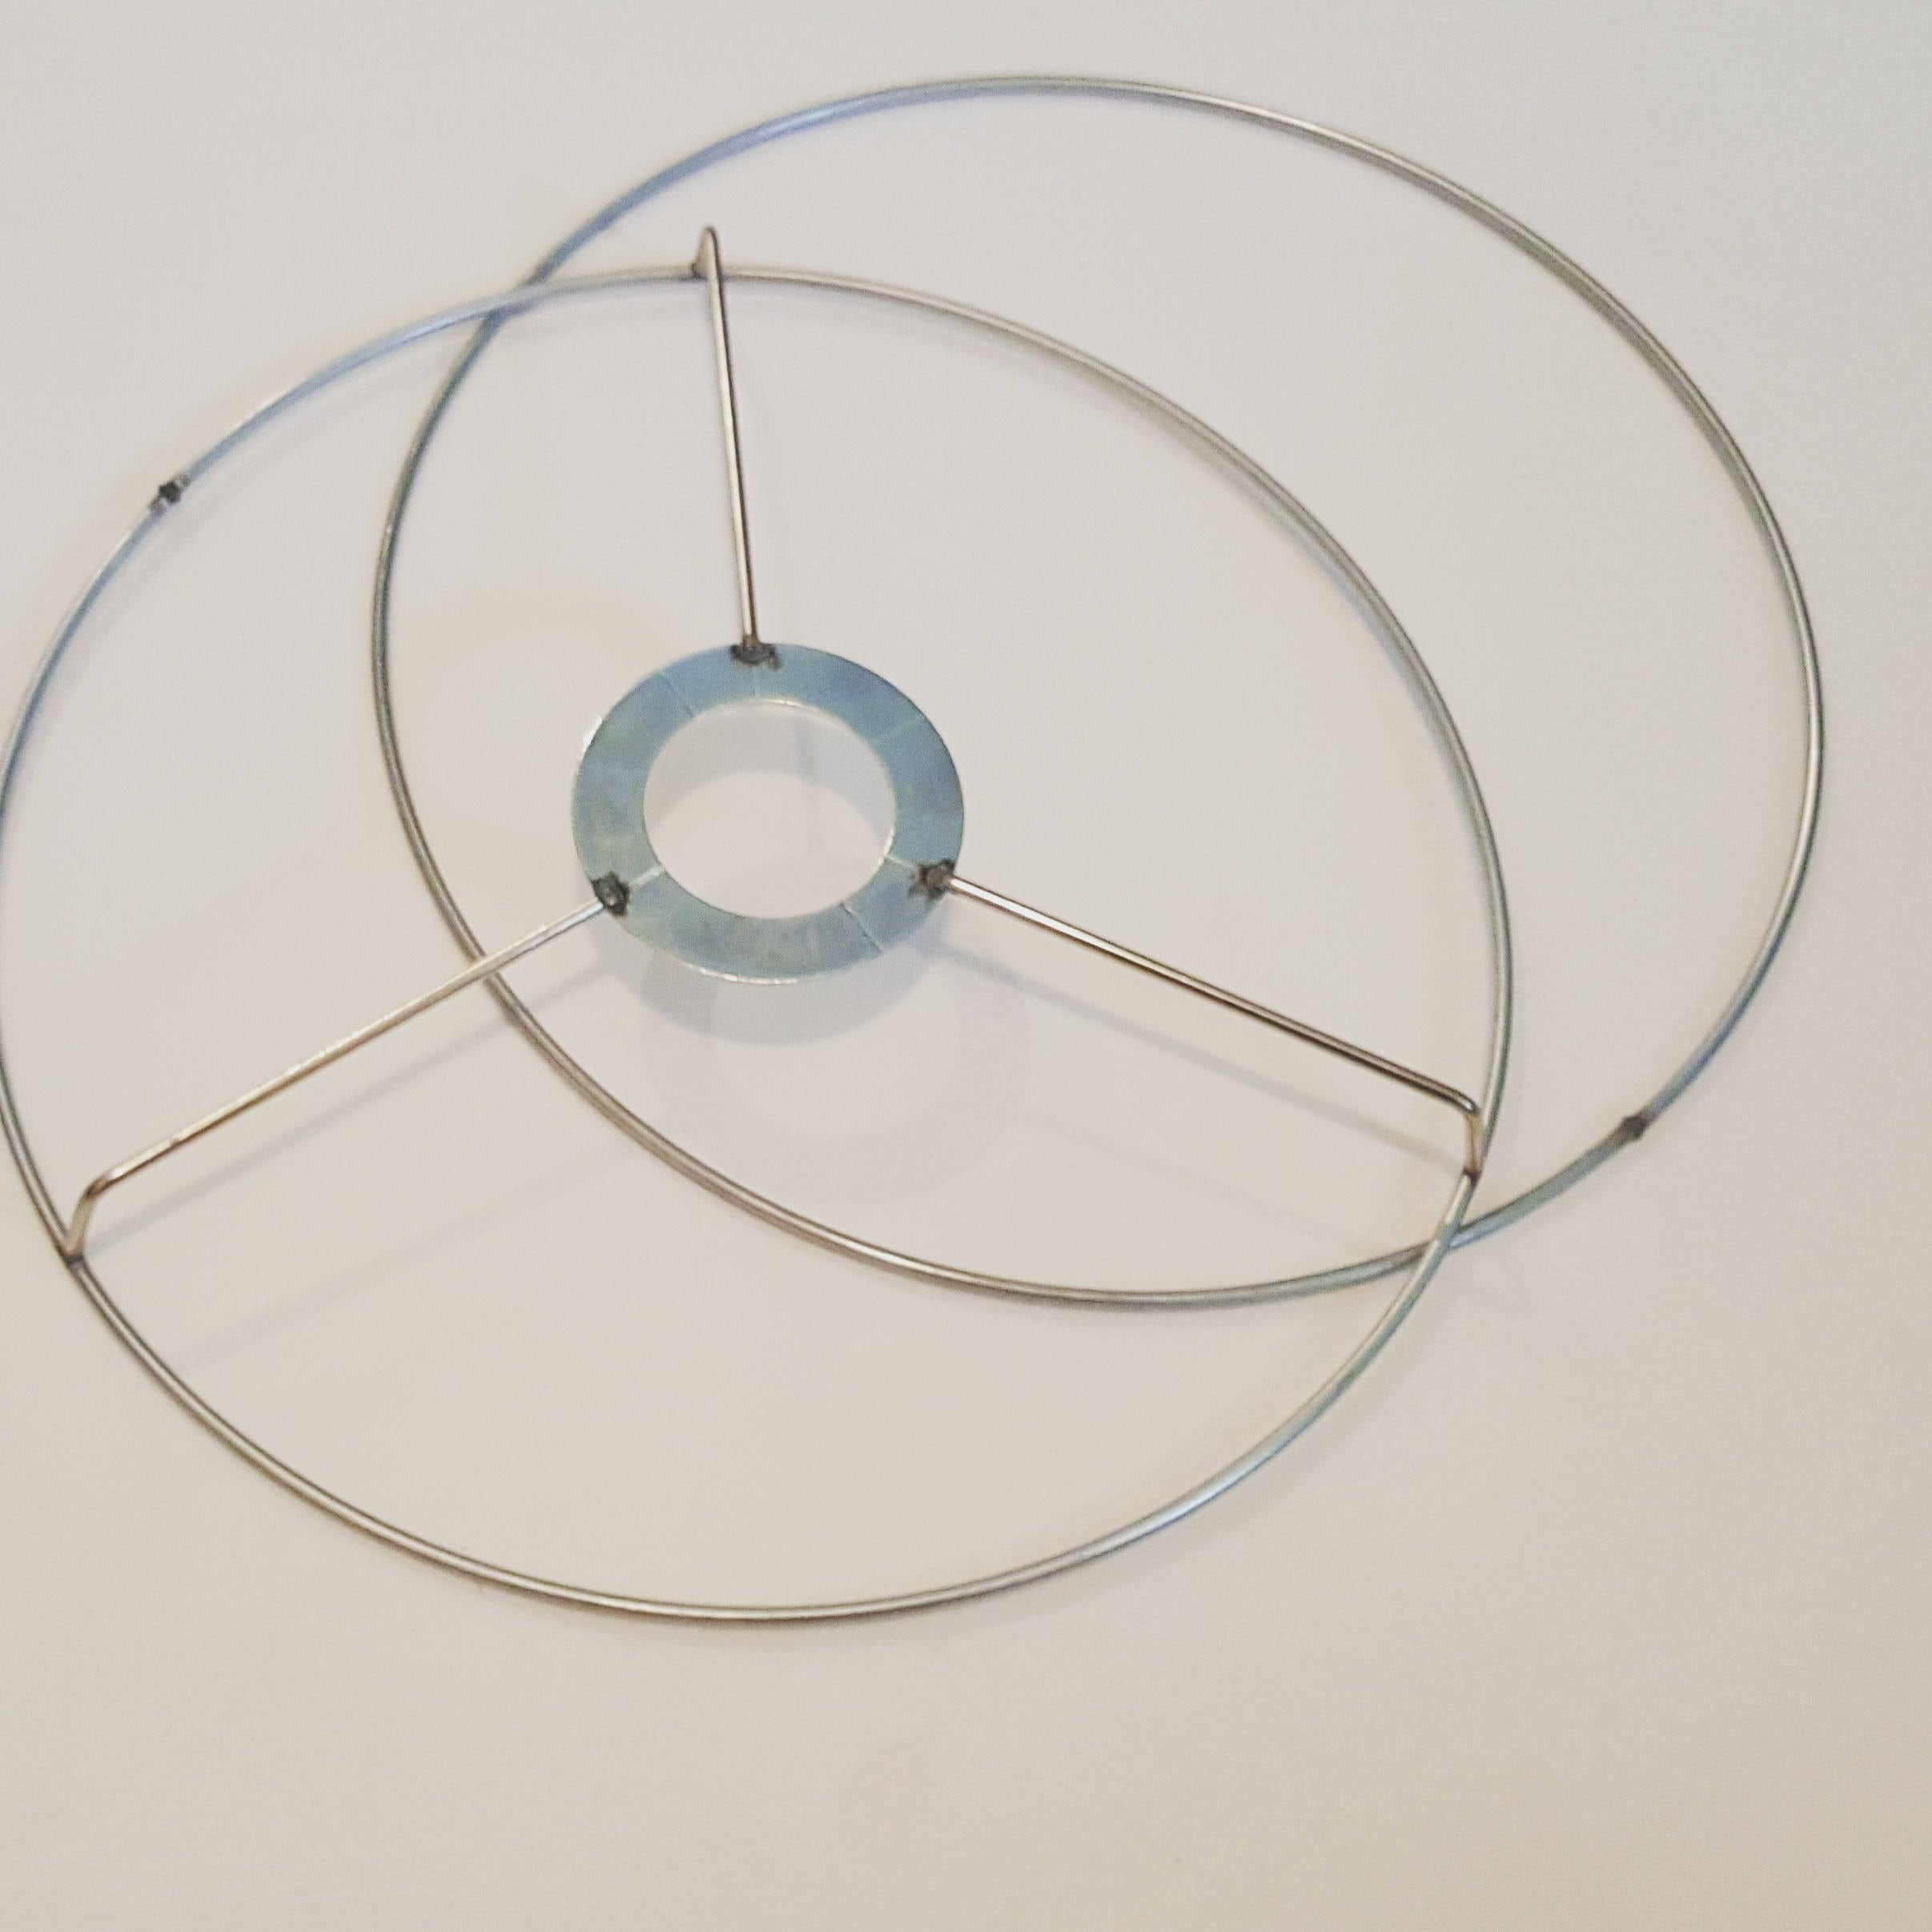 Set of 10 lampshade rings l nord lamp shade top and bottom ring set set of 10 lampshade rings l nord lamp shade top and bottom ring set l lamp shade euro ring l diy hardware 12 drop l lampshade frame from thelampsbarn greentooth Choice Image